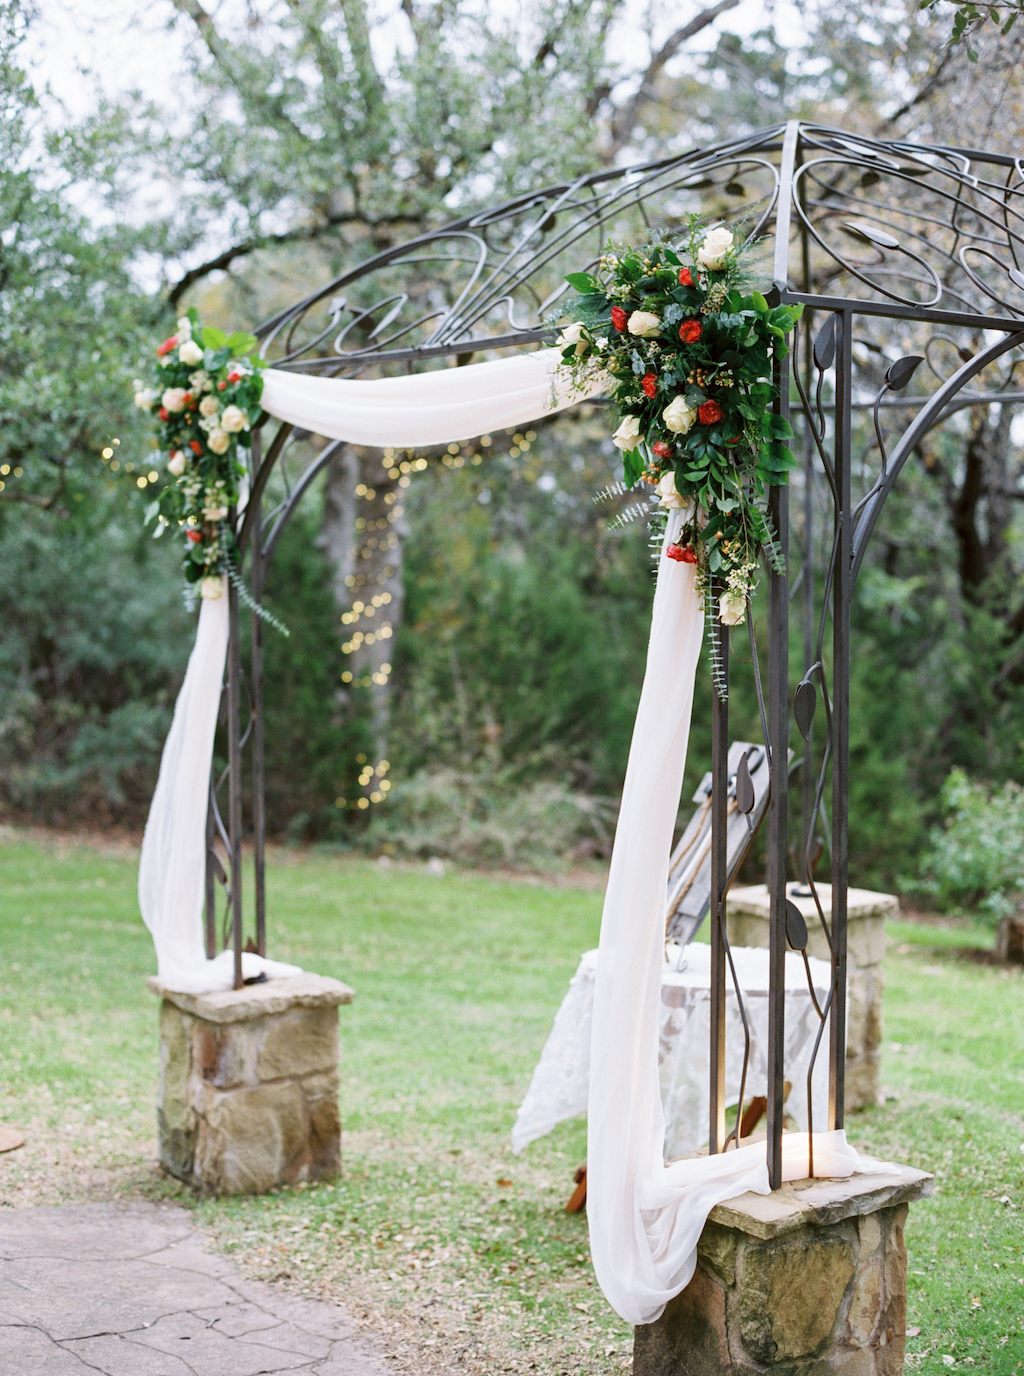 An elegant ceremony arbor is decorated for a winter wedding at a venue in Georgetown, Texas. Photo by Jen Dillender Photography.